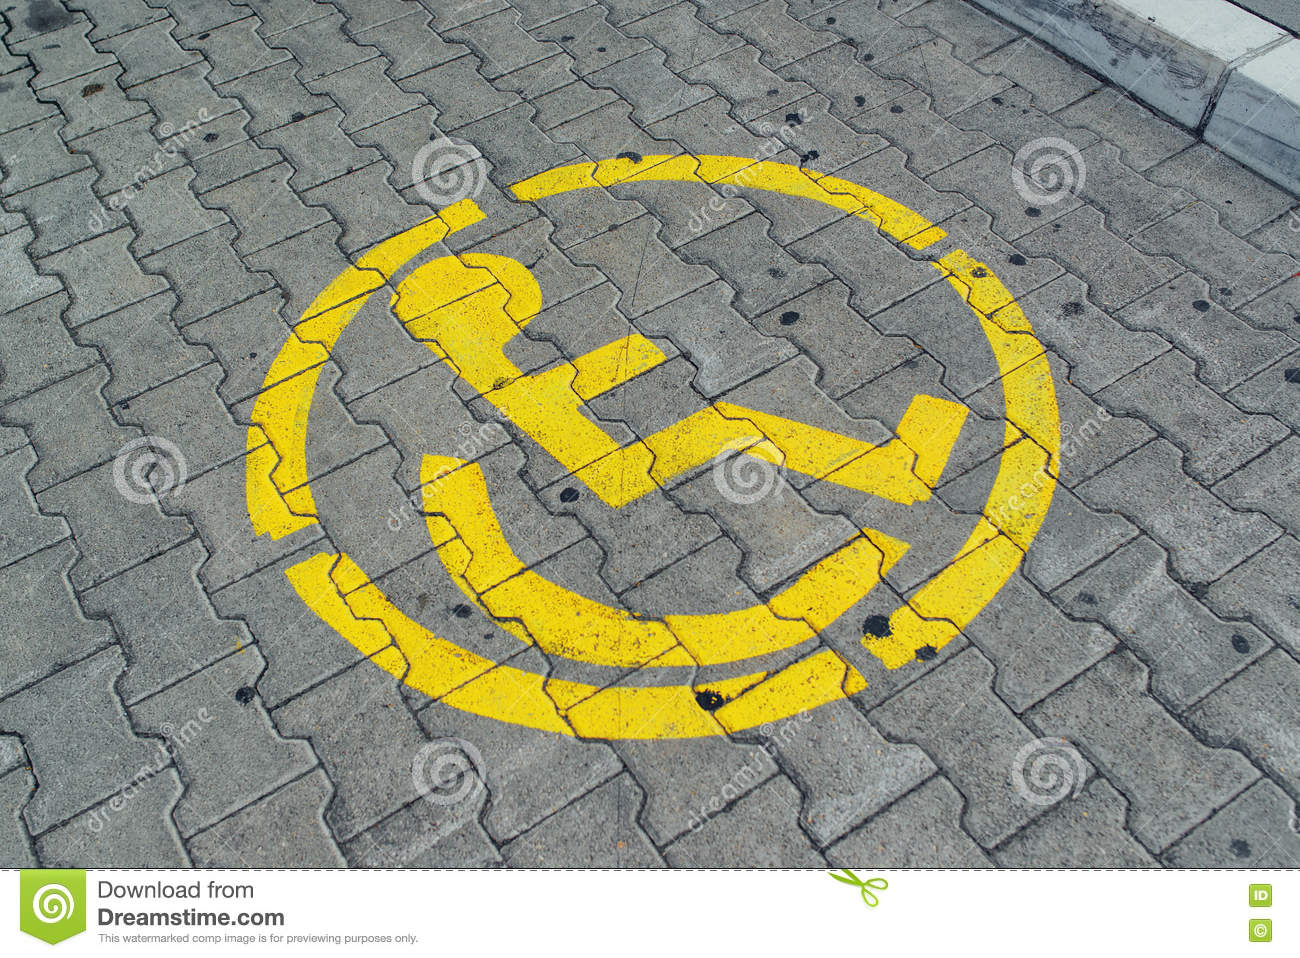 Reserved parking space lot for disabled person